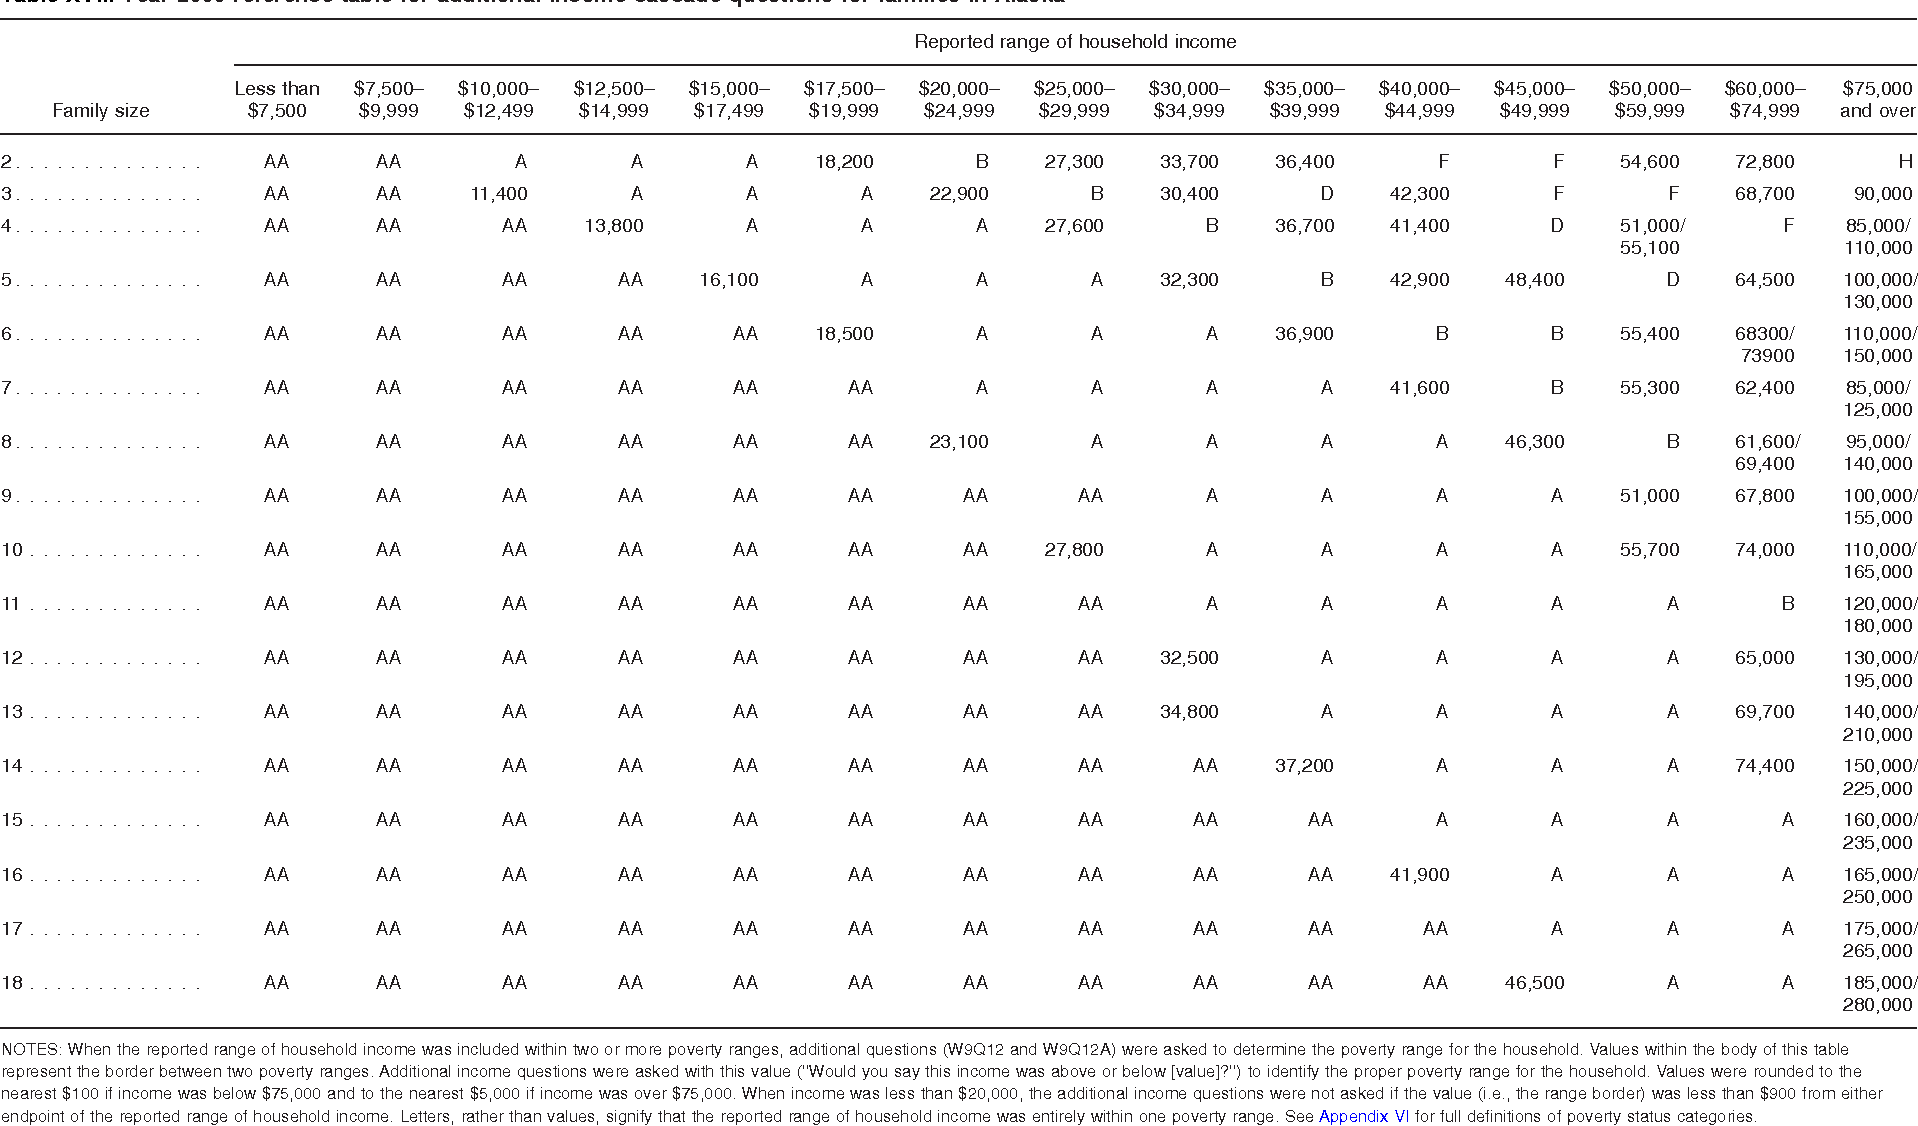 Table XVII. Year 2009 reference table for additional income cascade questions for families in Alaska